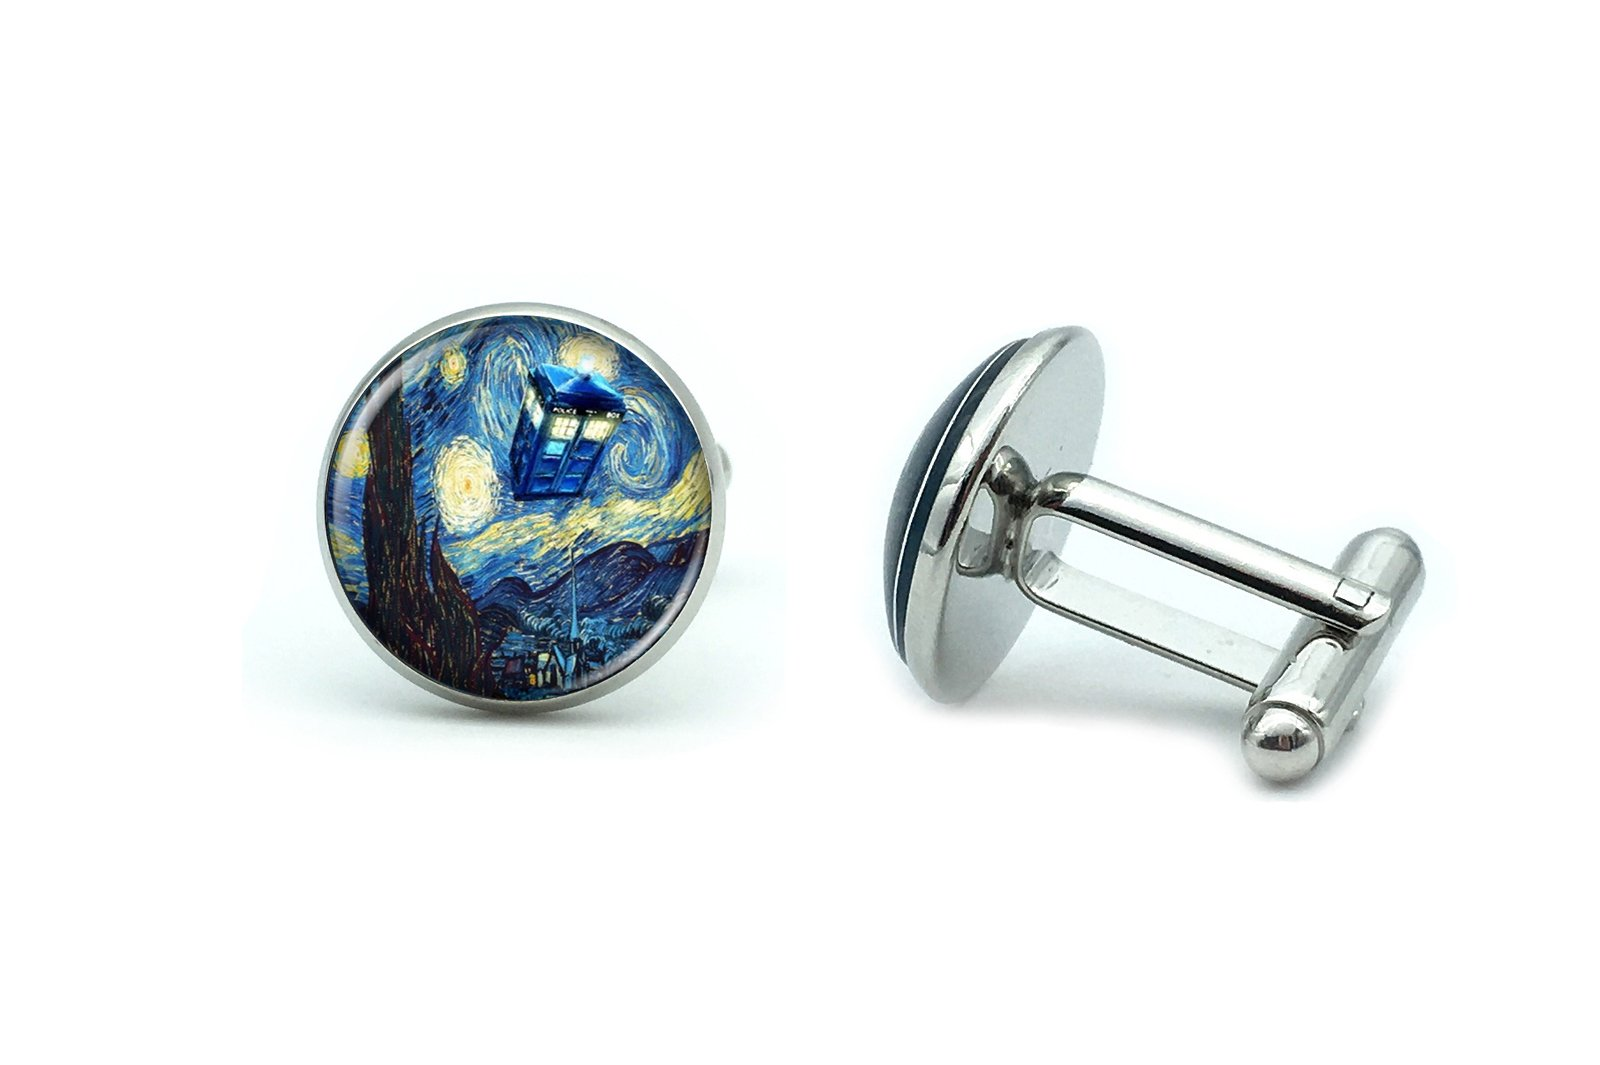 Mens' Silver Set of Cufflinks and Tie Clip Wedding Doctor Who TARDIS Starry Night Gift Box by B Seve (Image #3)